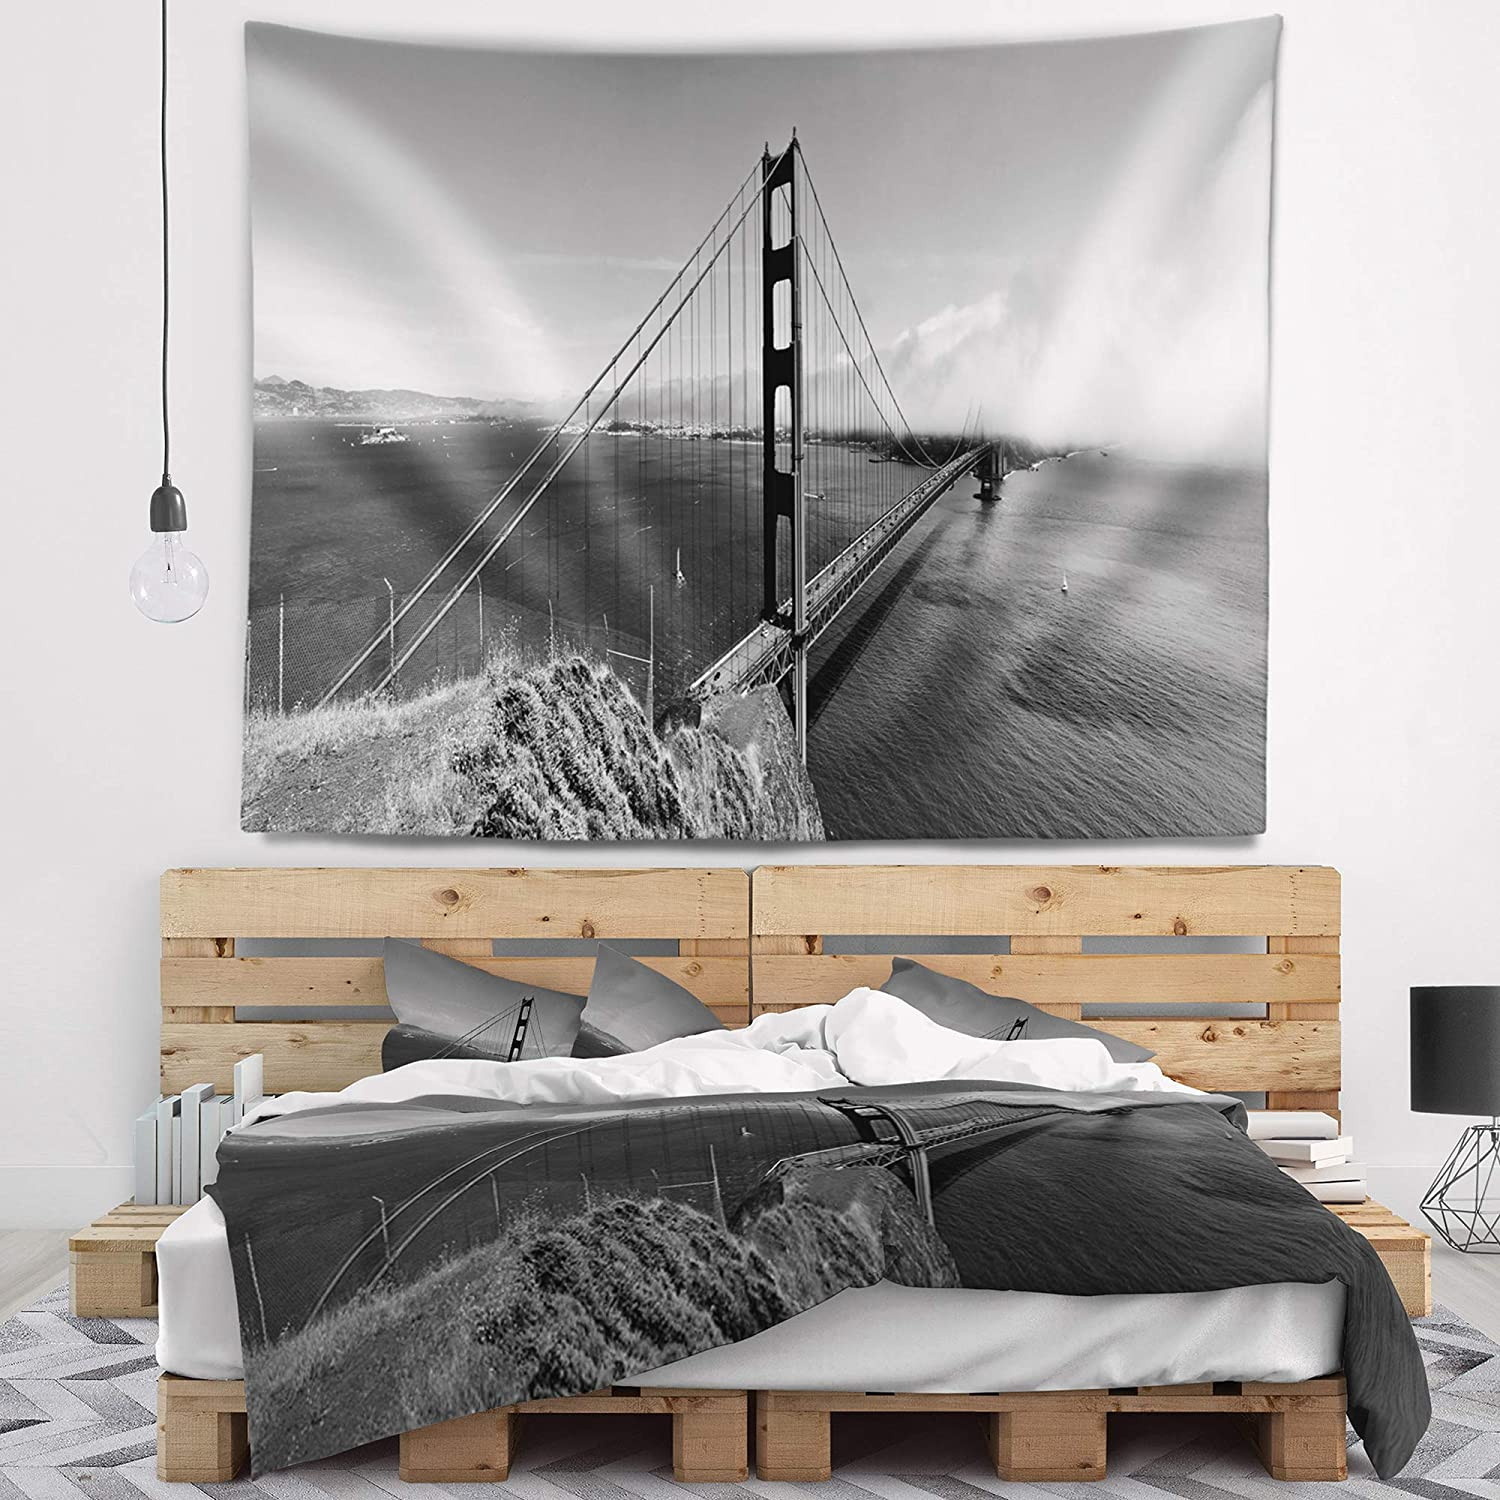 x 32 in 39 in Designart TAP10031-39-32  Golden Gate Gray Panorama Sea Bridge Blanket D/écor Art for Home and Office Wall Tapestry Medium in